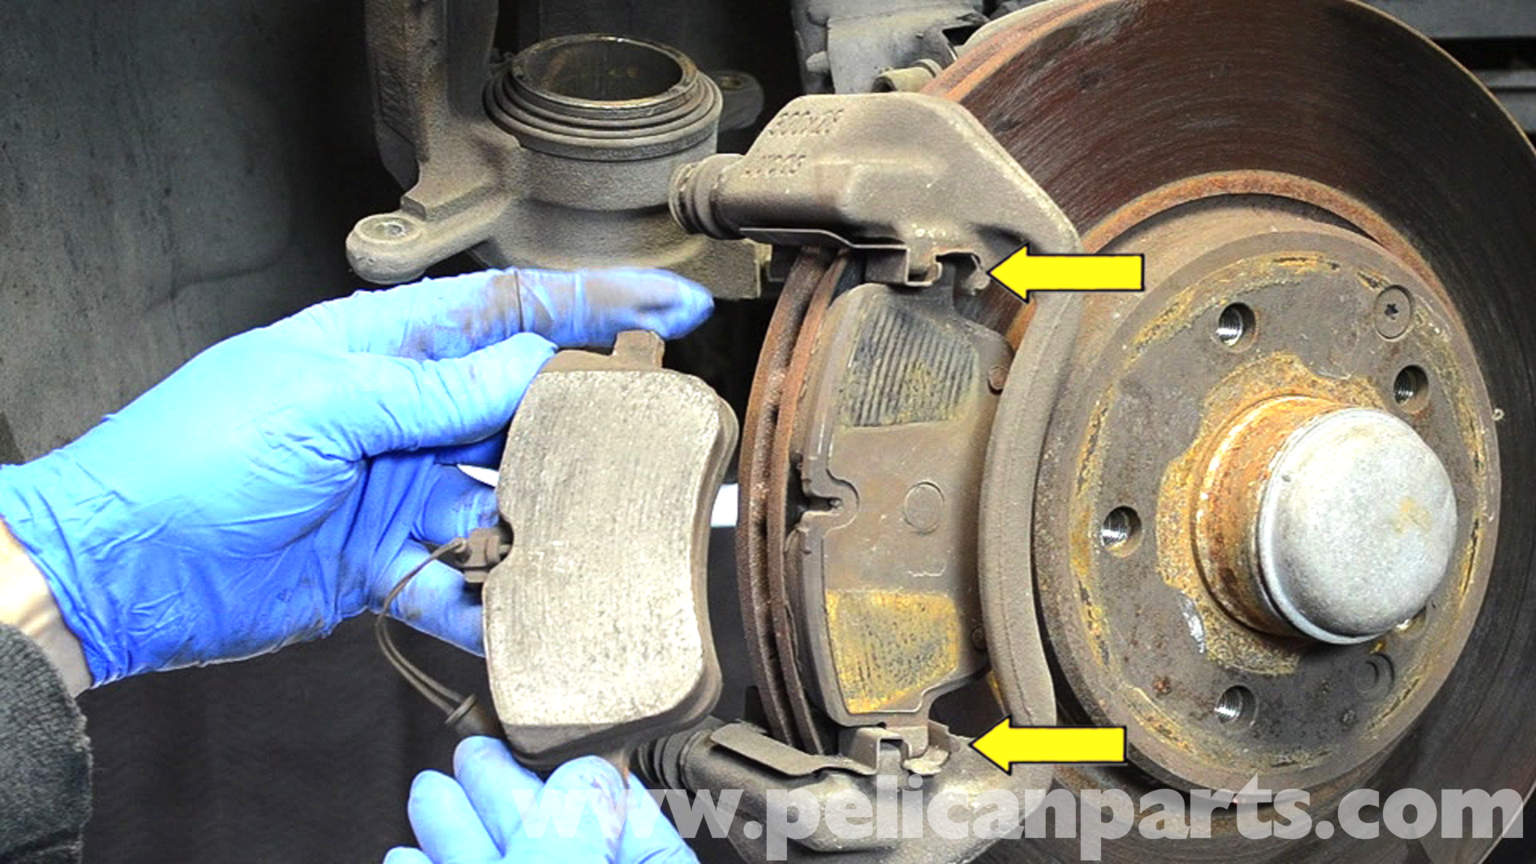 Mercedes benz w203 front brake pad replacement 2001 for Mercedes benz brake calipers